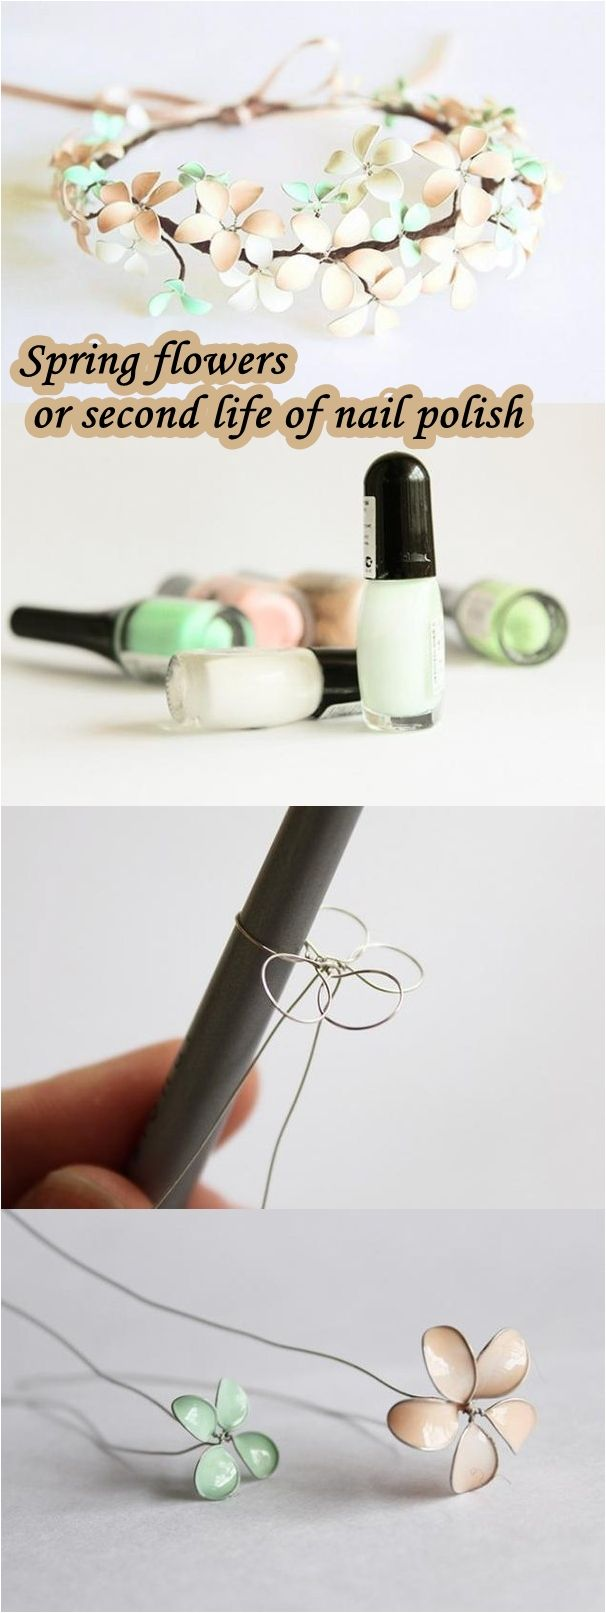 Diy Wire & Nail Polish Flower Tutorial